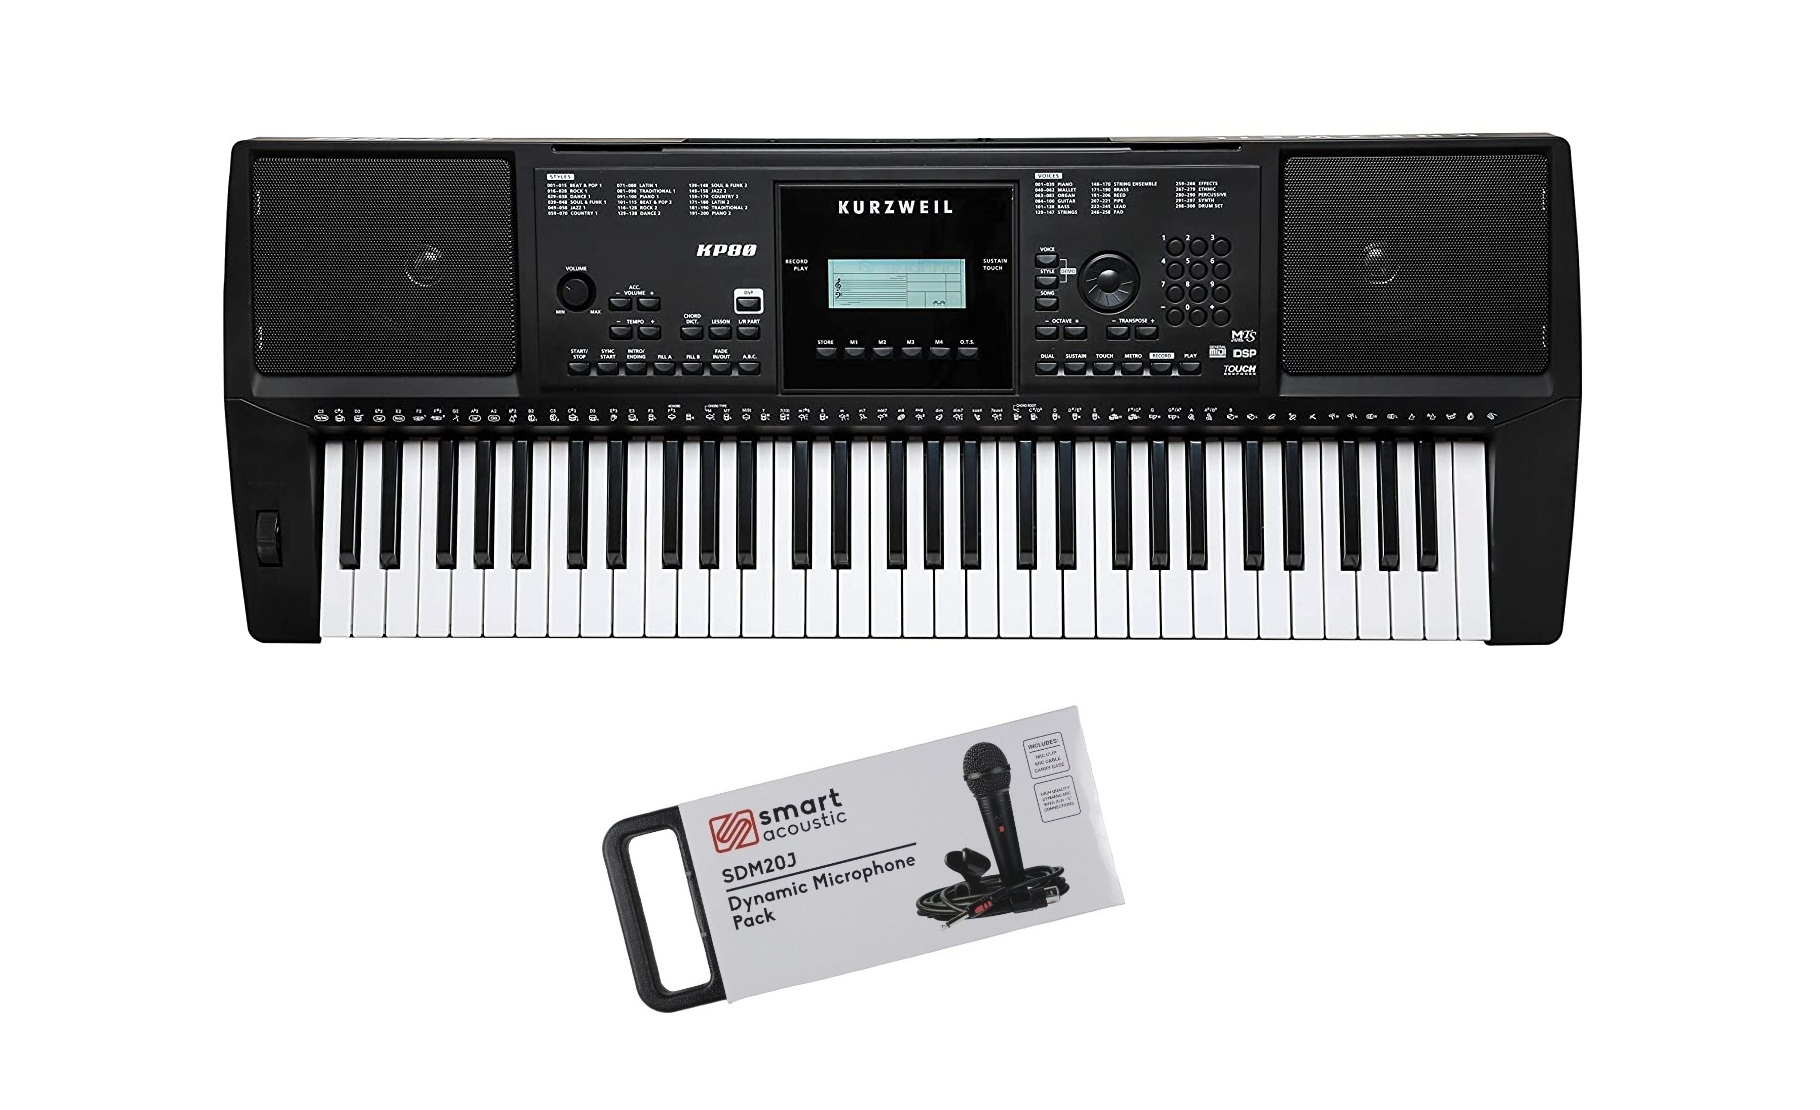 Kurzweil KP80 61 keys Arranger Keyboard with free Microphone